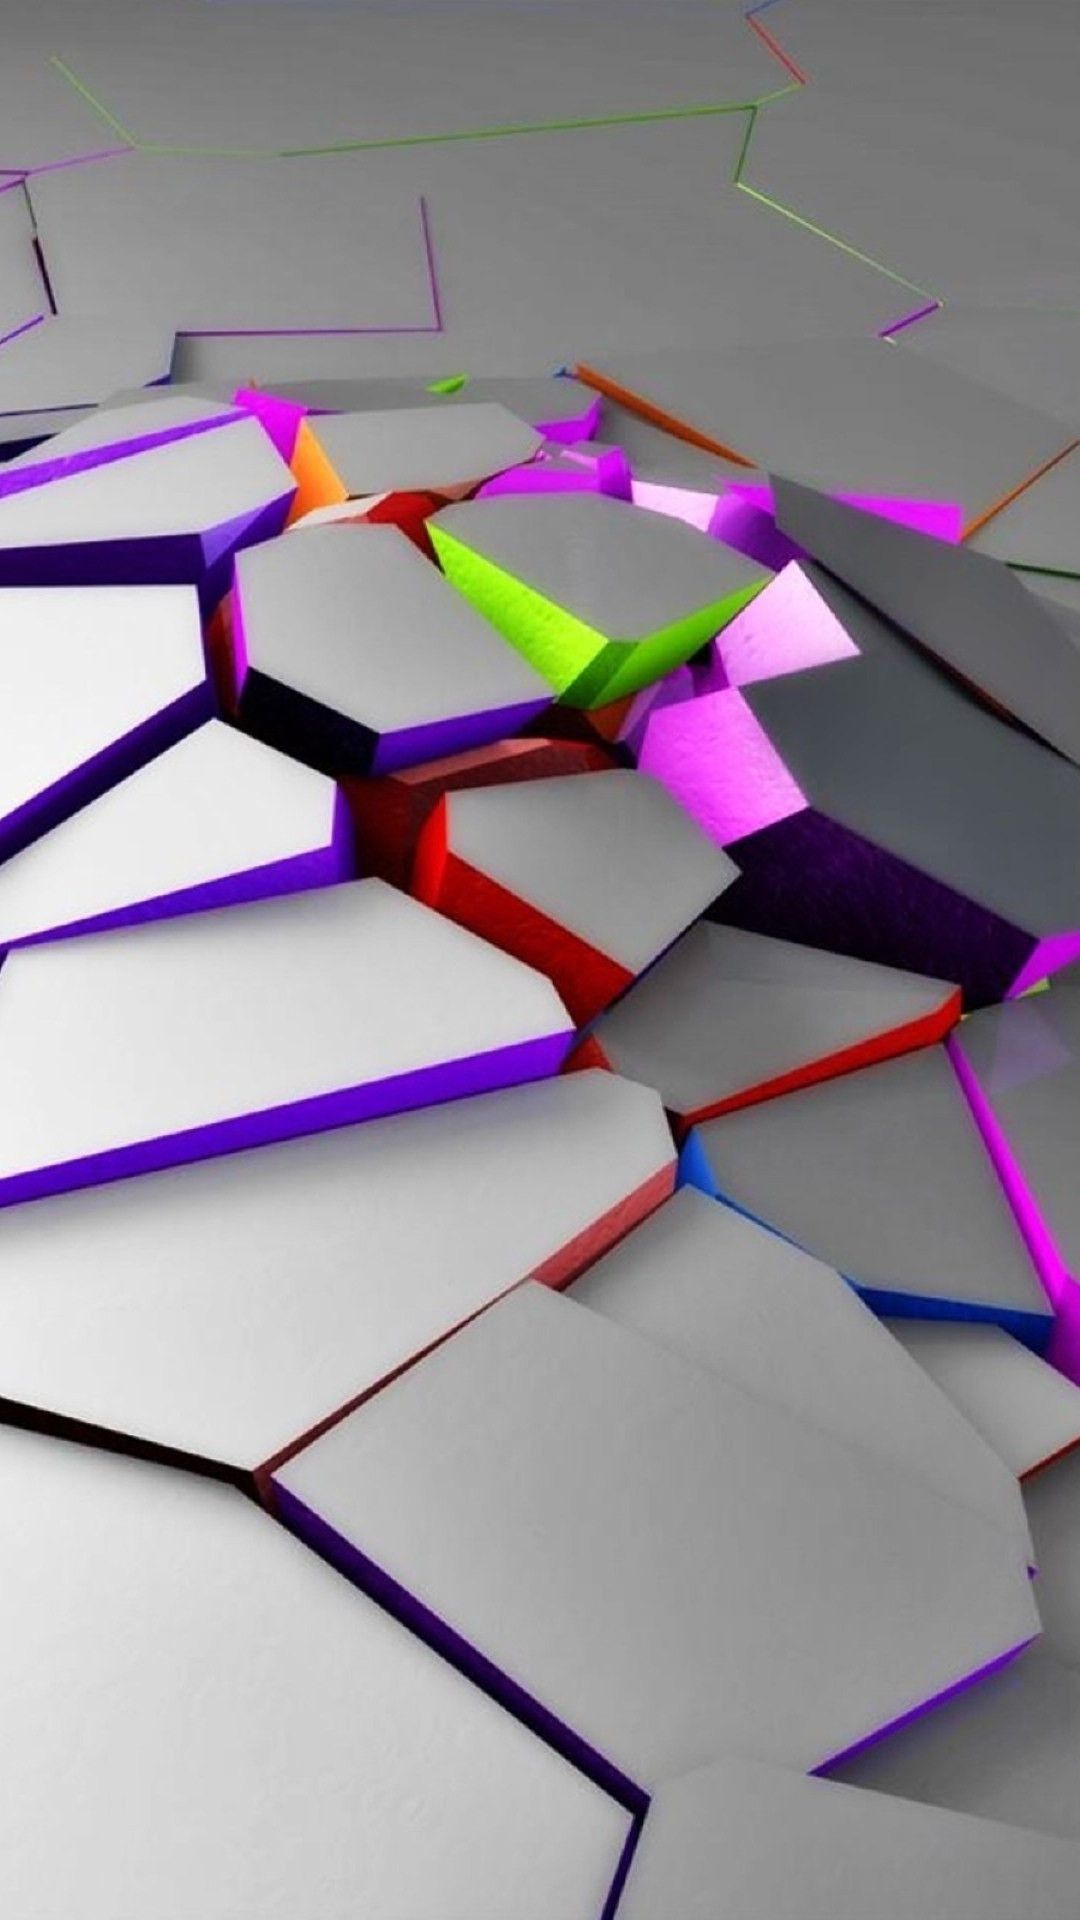 3d neon cracks best htc one wallpapers free and easy to - Neon hd wallpaper for mobile ...